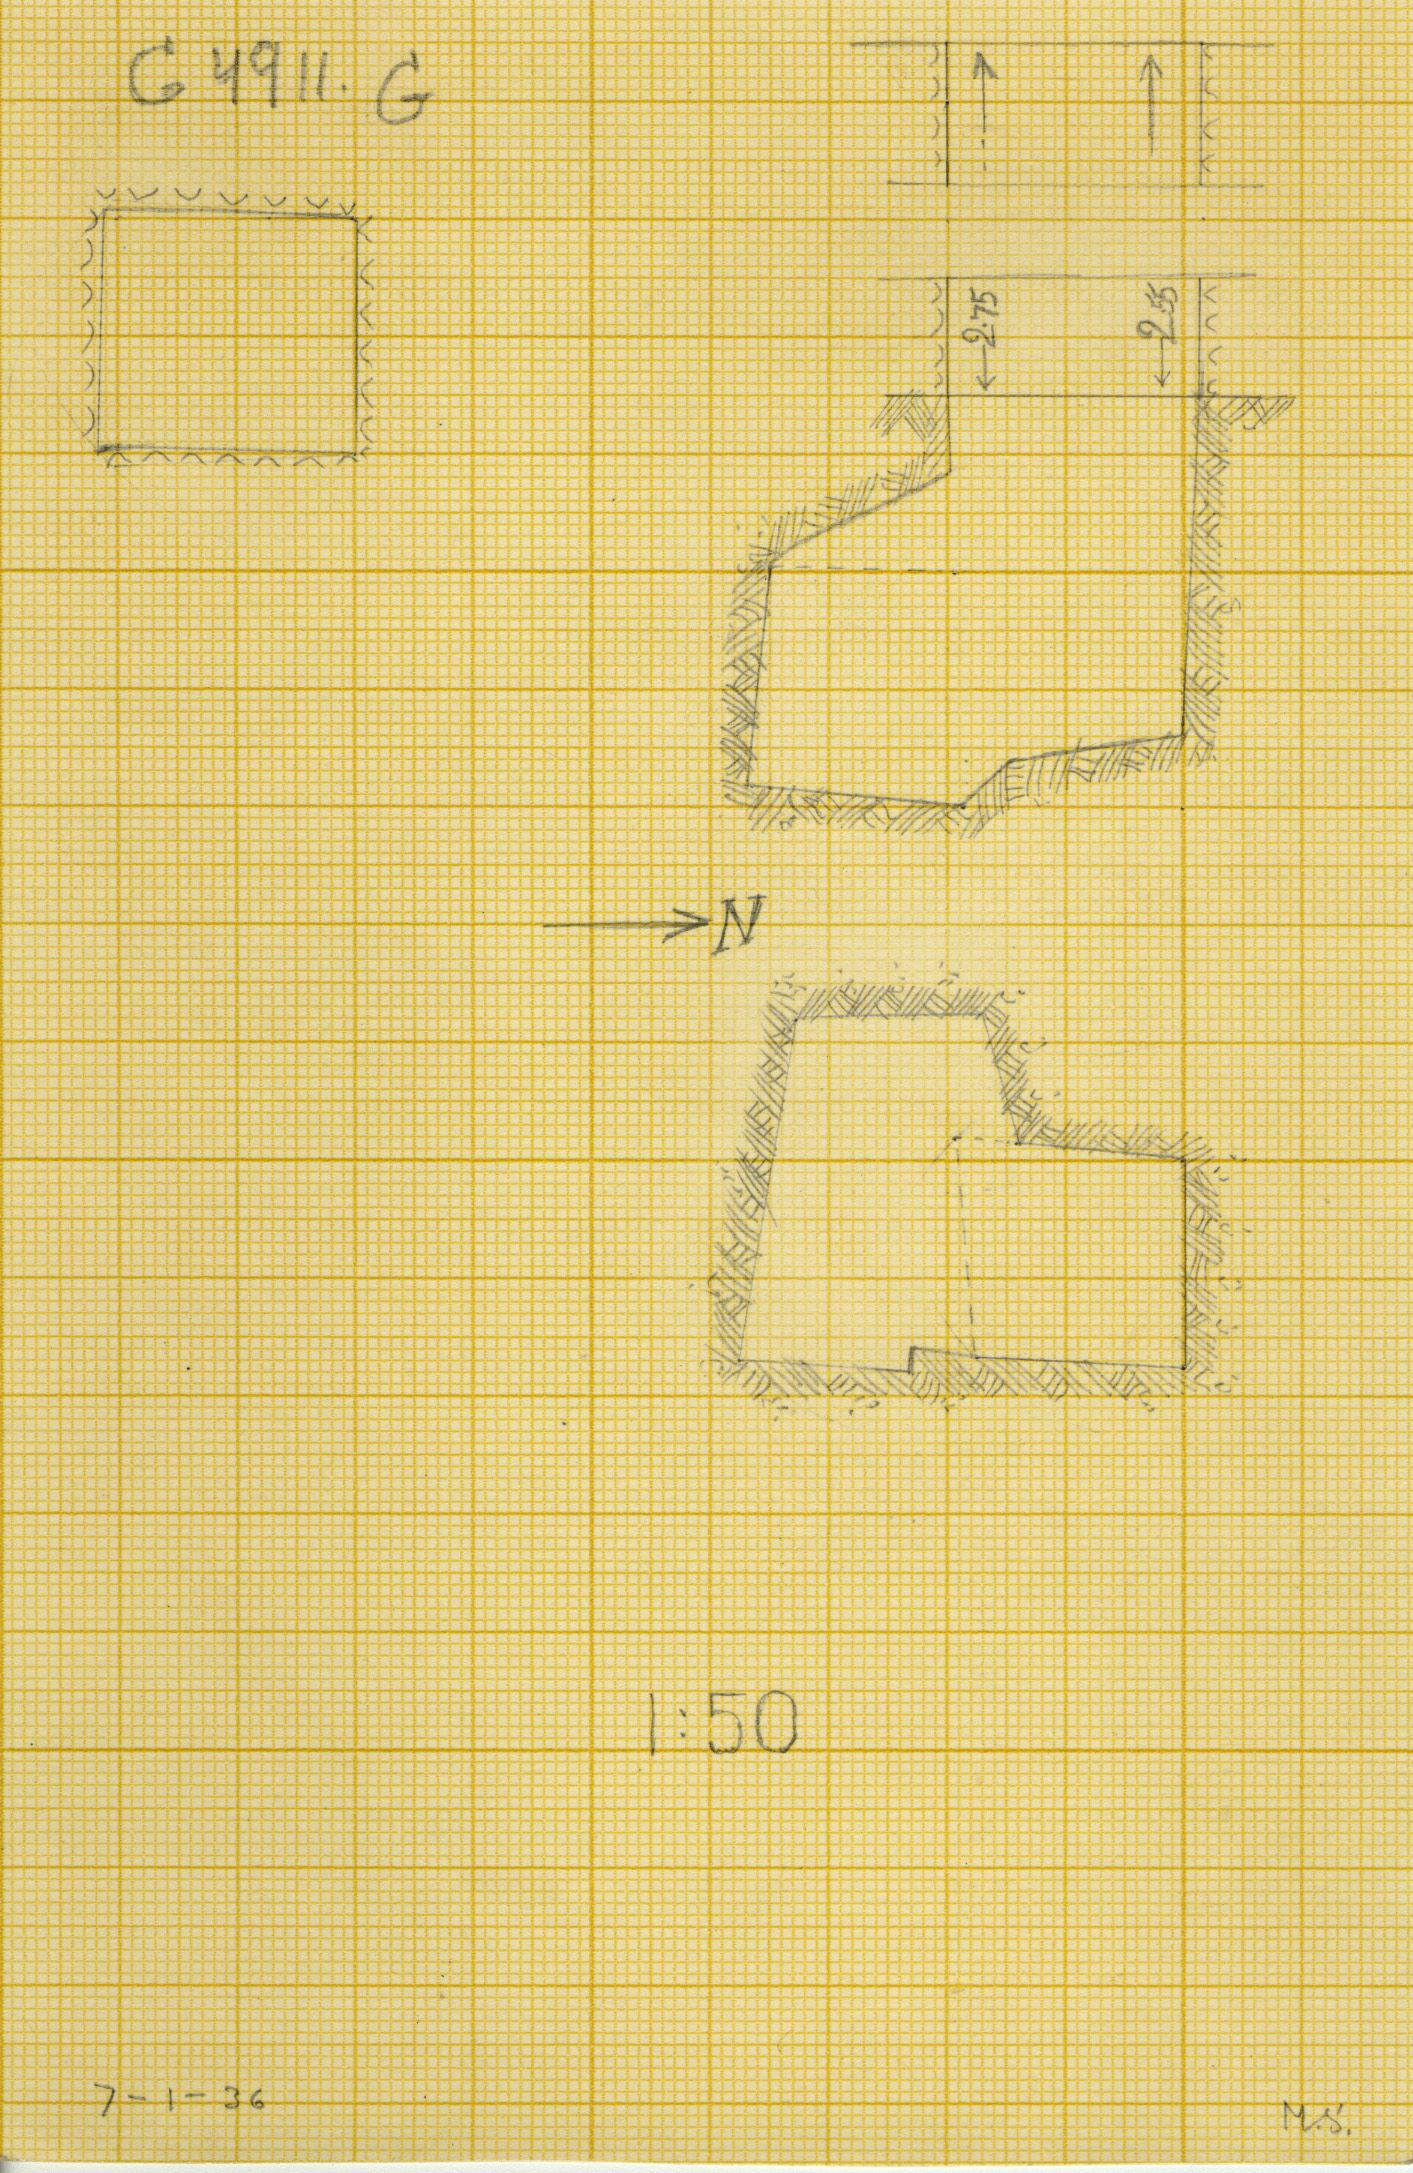 Maps and plans: G 4911, Shaft G